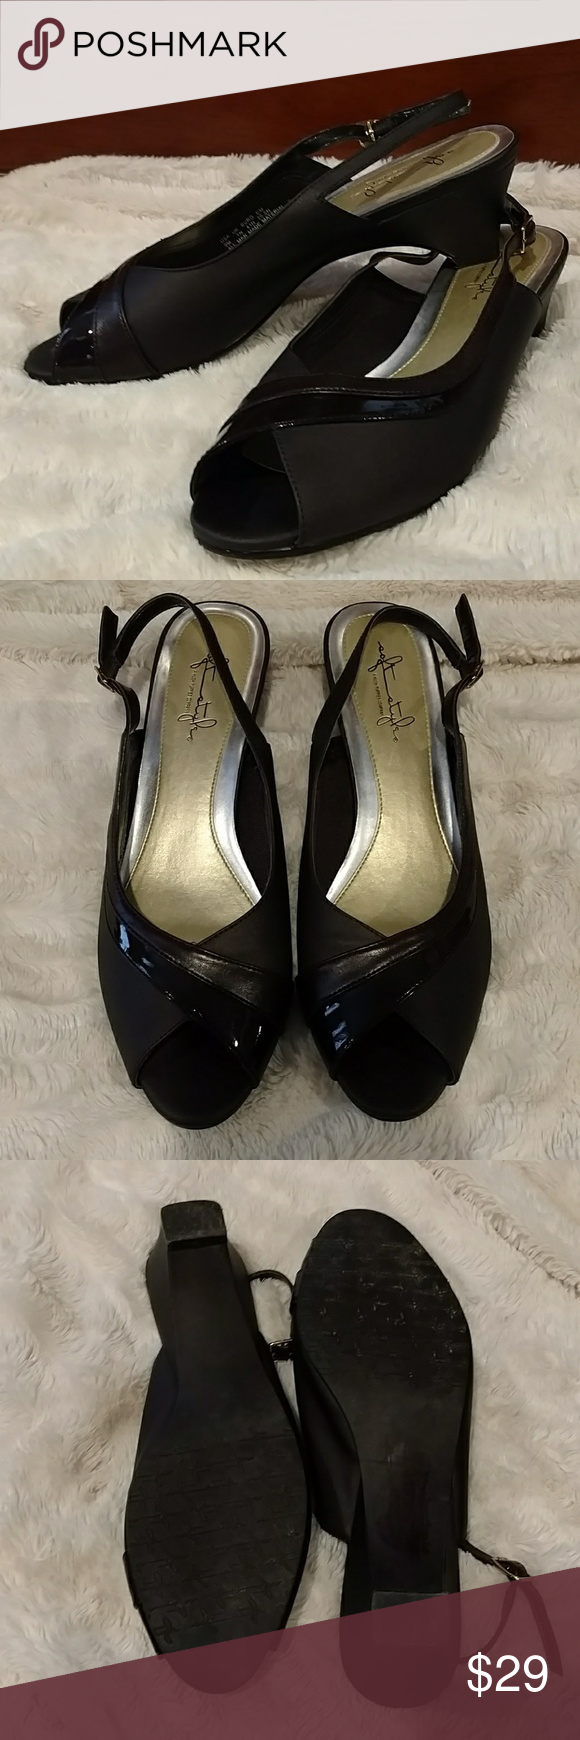 Dark Brown Soft Styles by Hush Puppies, Epoc Size 9 very comfortable rich espresso brown heels with adjustable heel strap. Worn only a couple of times. Beautiful condition! Soft Styles, by Hush Puppies Shoes